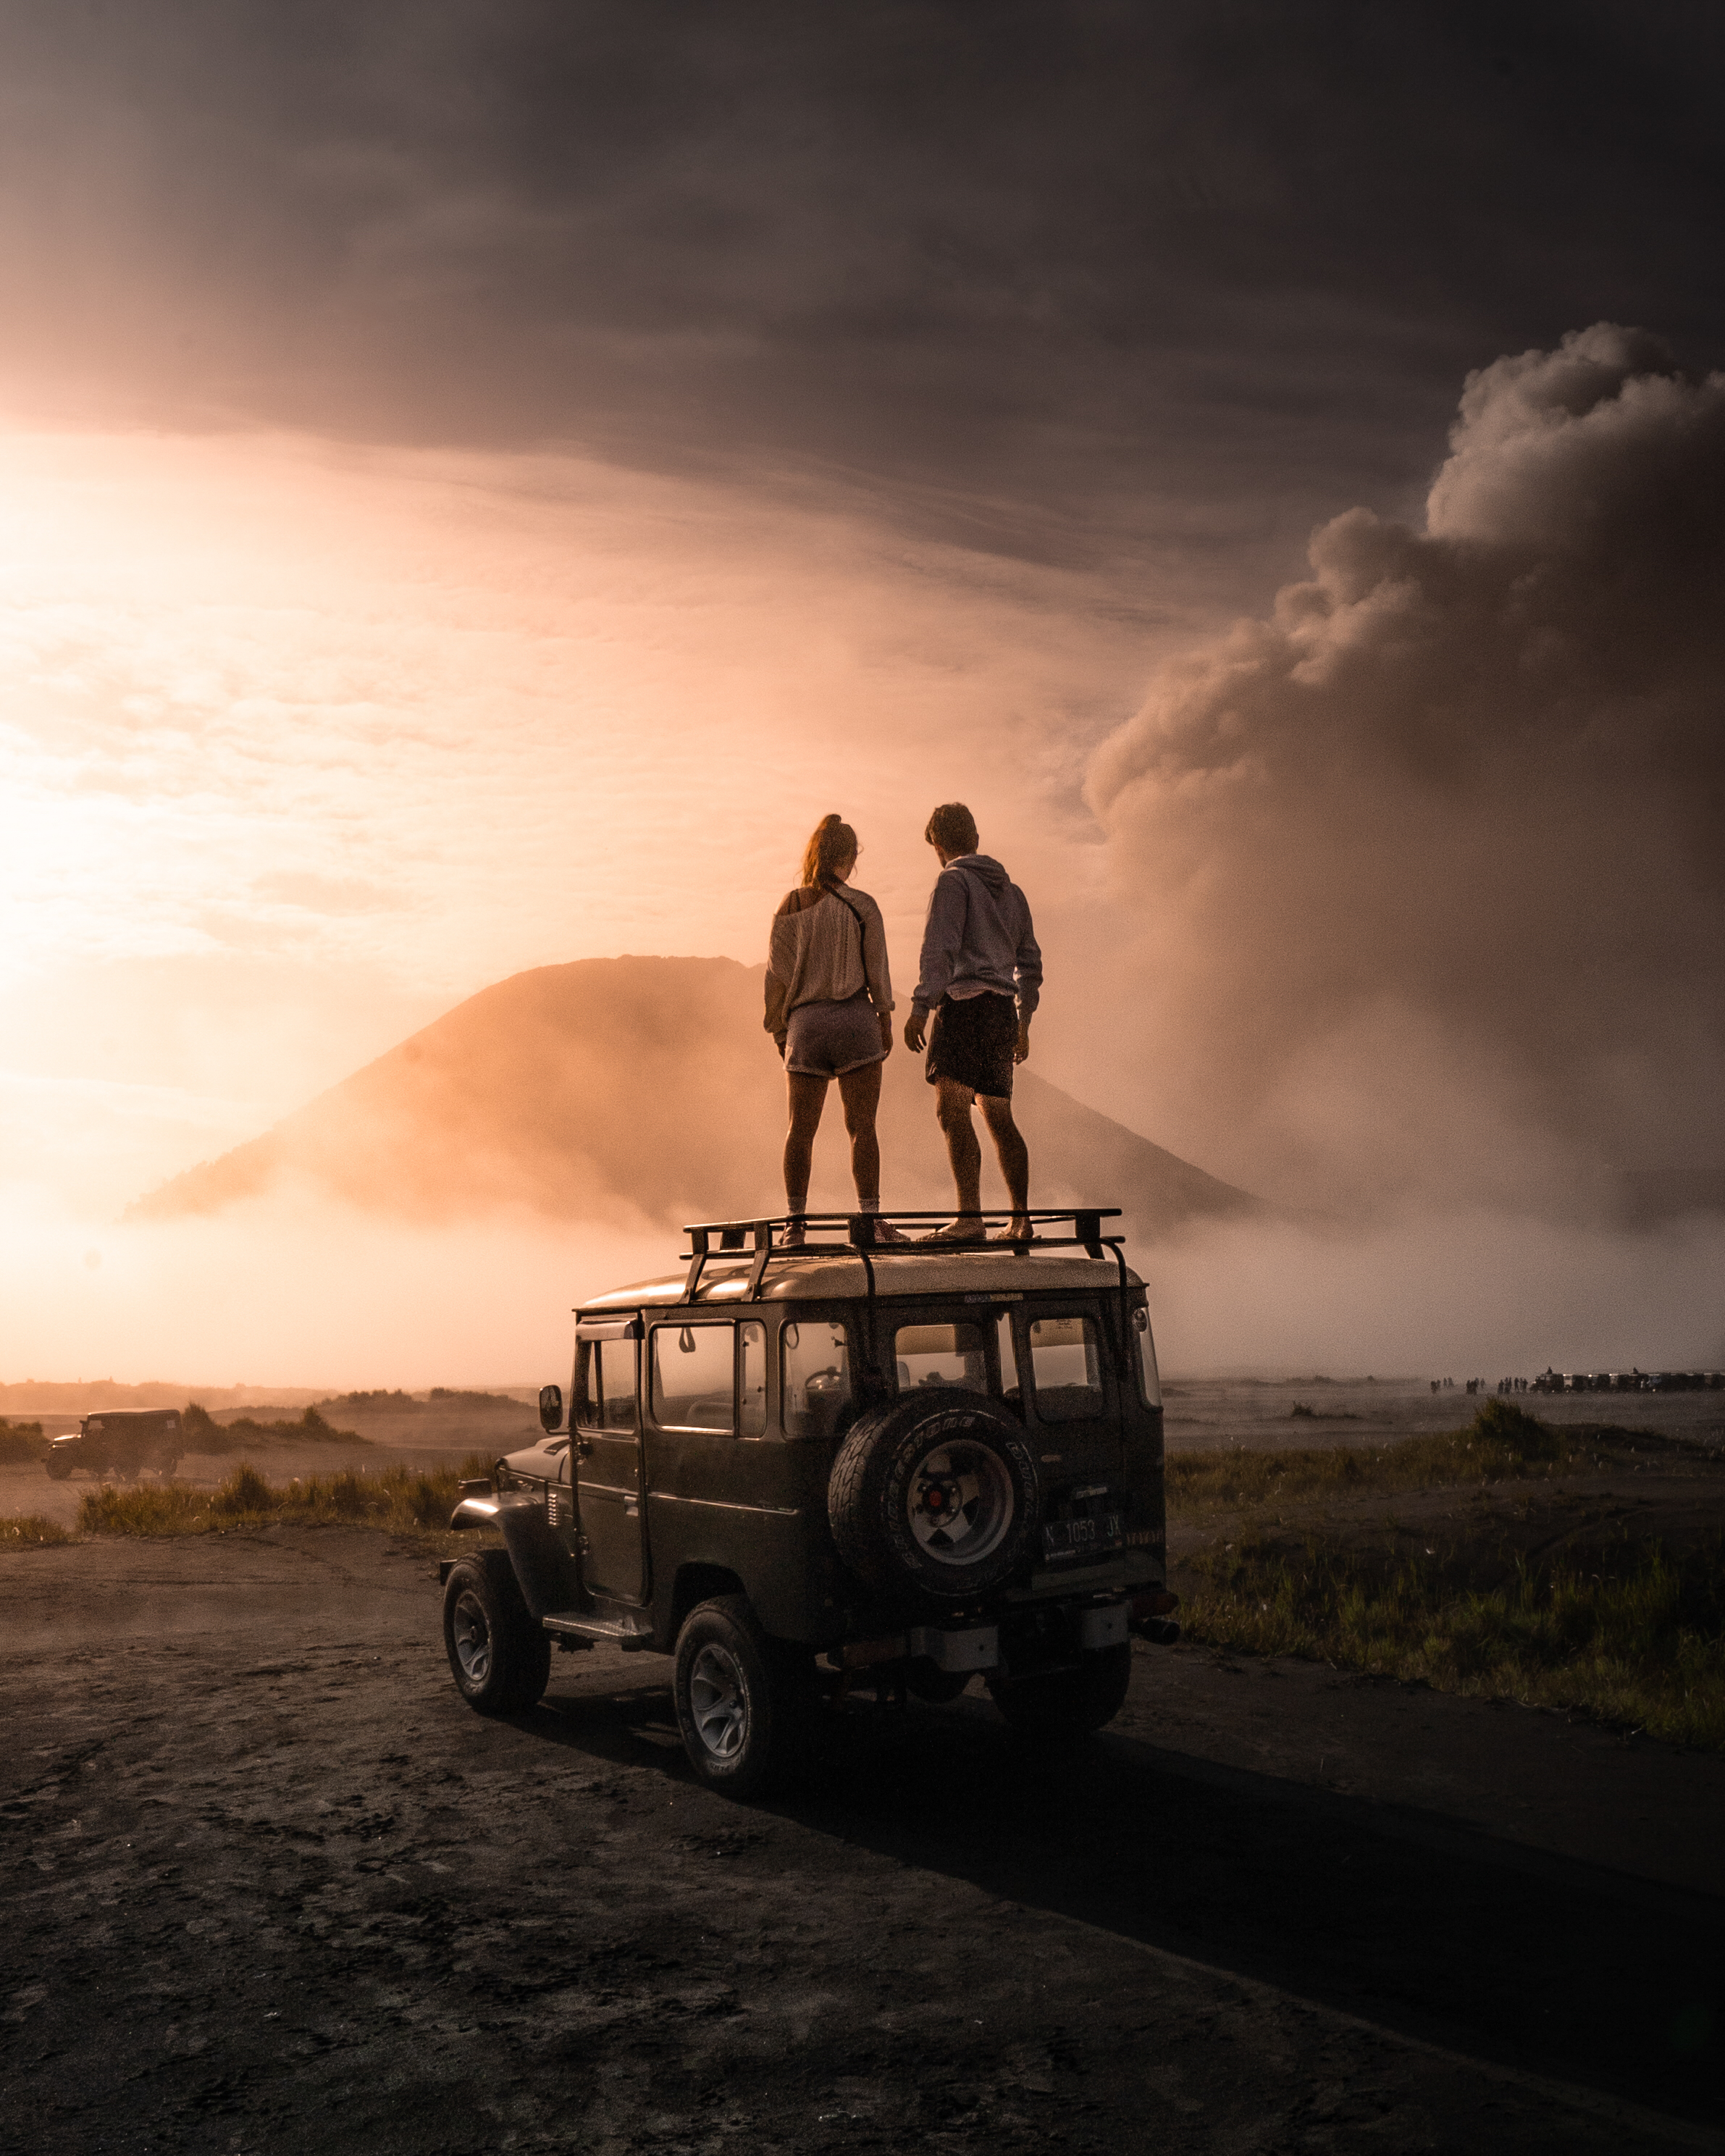 39 Road Trip Photos From The Agora International Photography Contest That Will Make You Want To Pack A Bag And Hit The Road